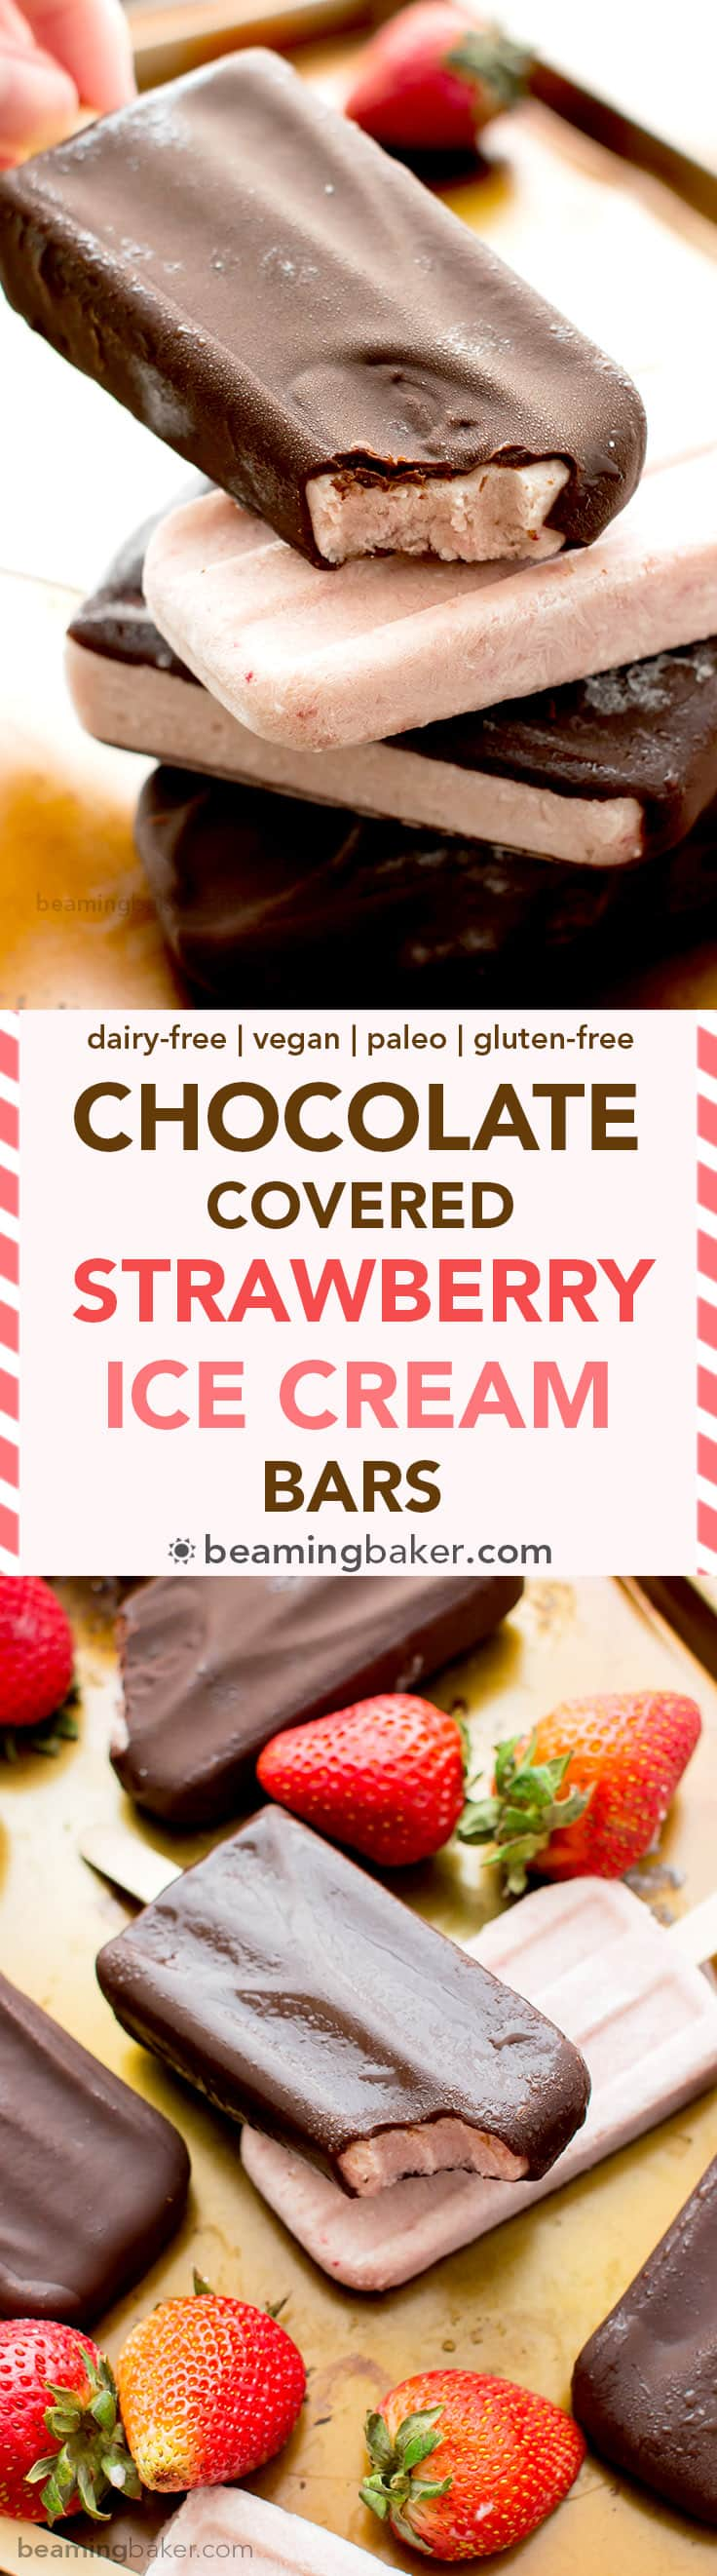 Chocolate-covered Strawberry Ice Cream Bars (V+GF): a 6 ingredient recipe for amazing ice cream bars that taste like chocolate-covered strawberries. #Vegan #DairyFree #Paleo #GlutenFree | BeamingBaker.com